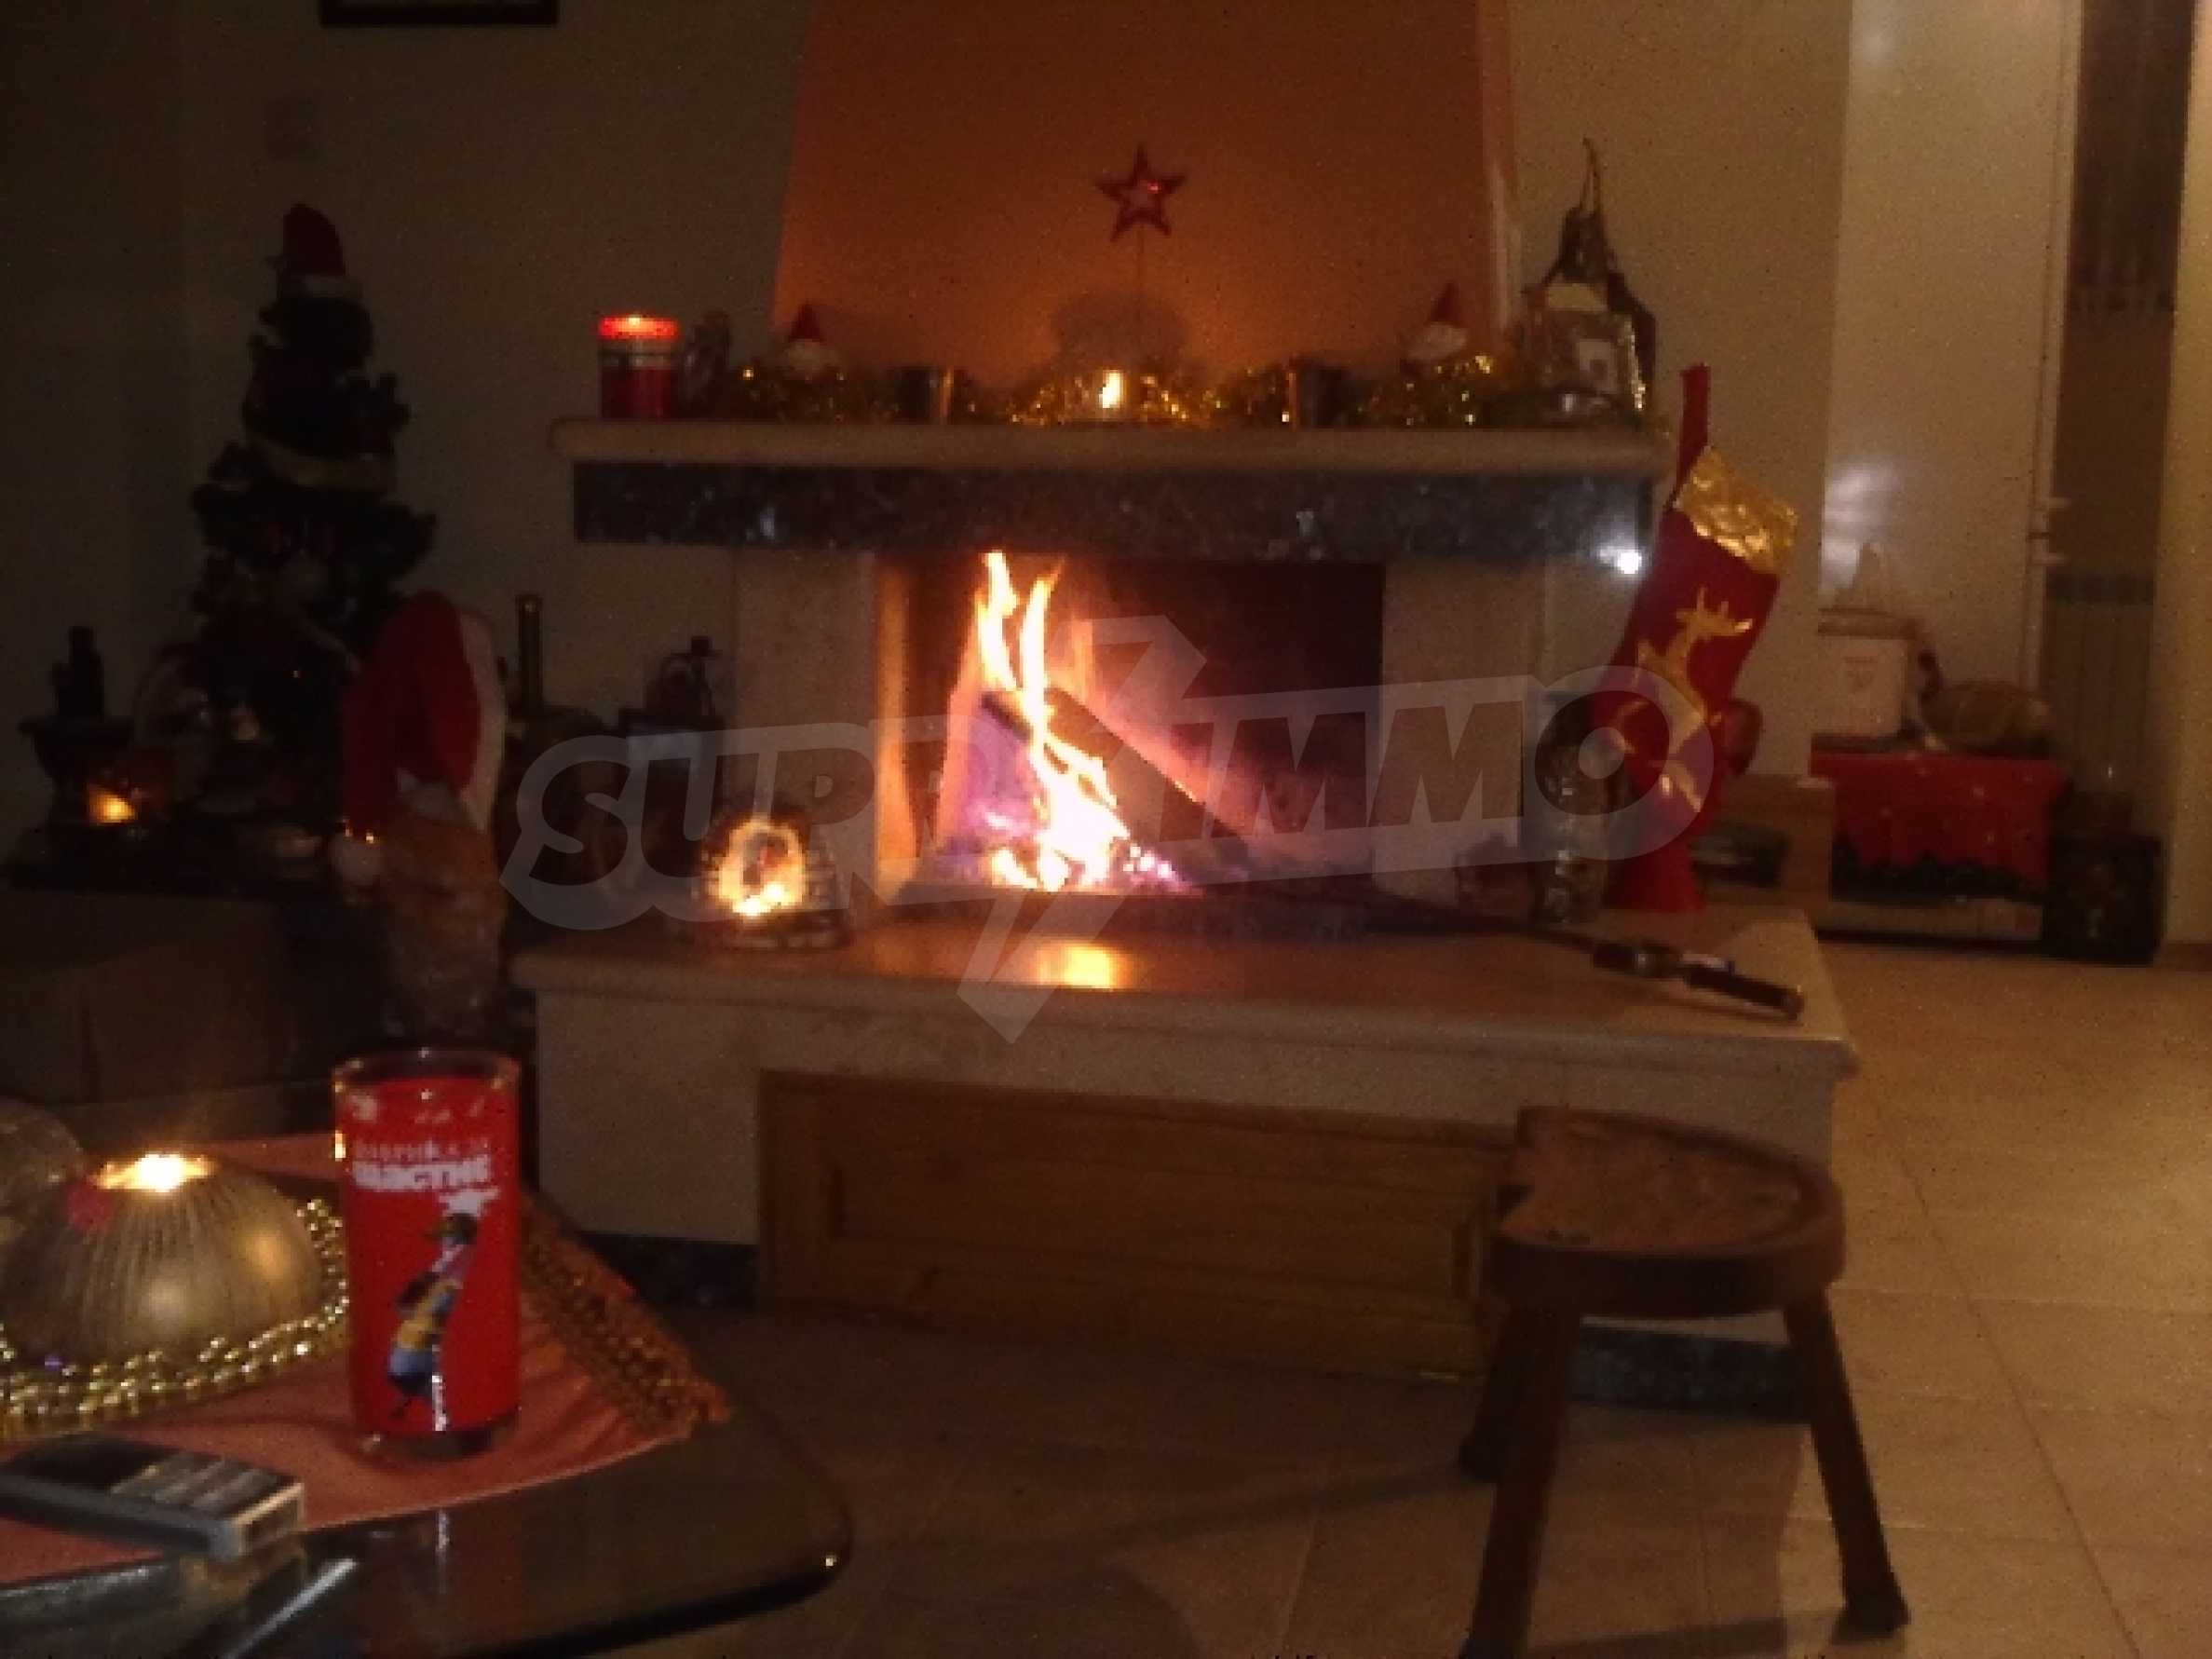 House for sale in Haskovo 16